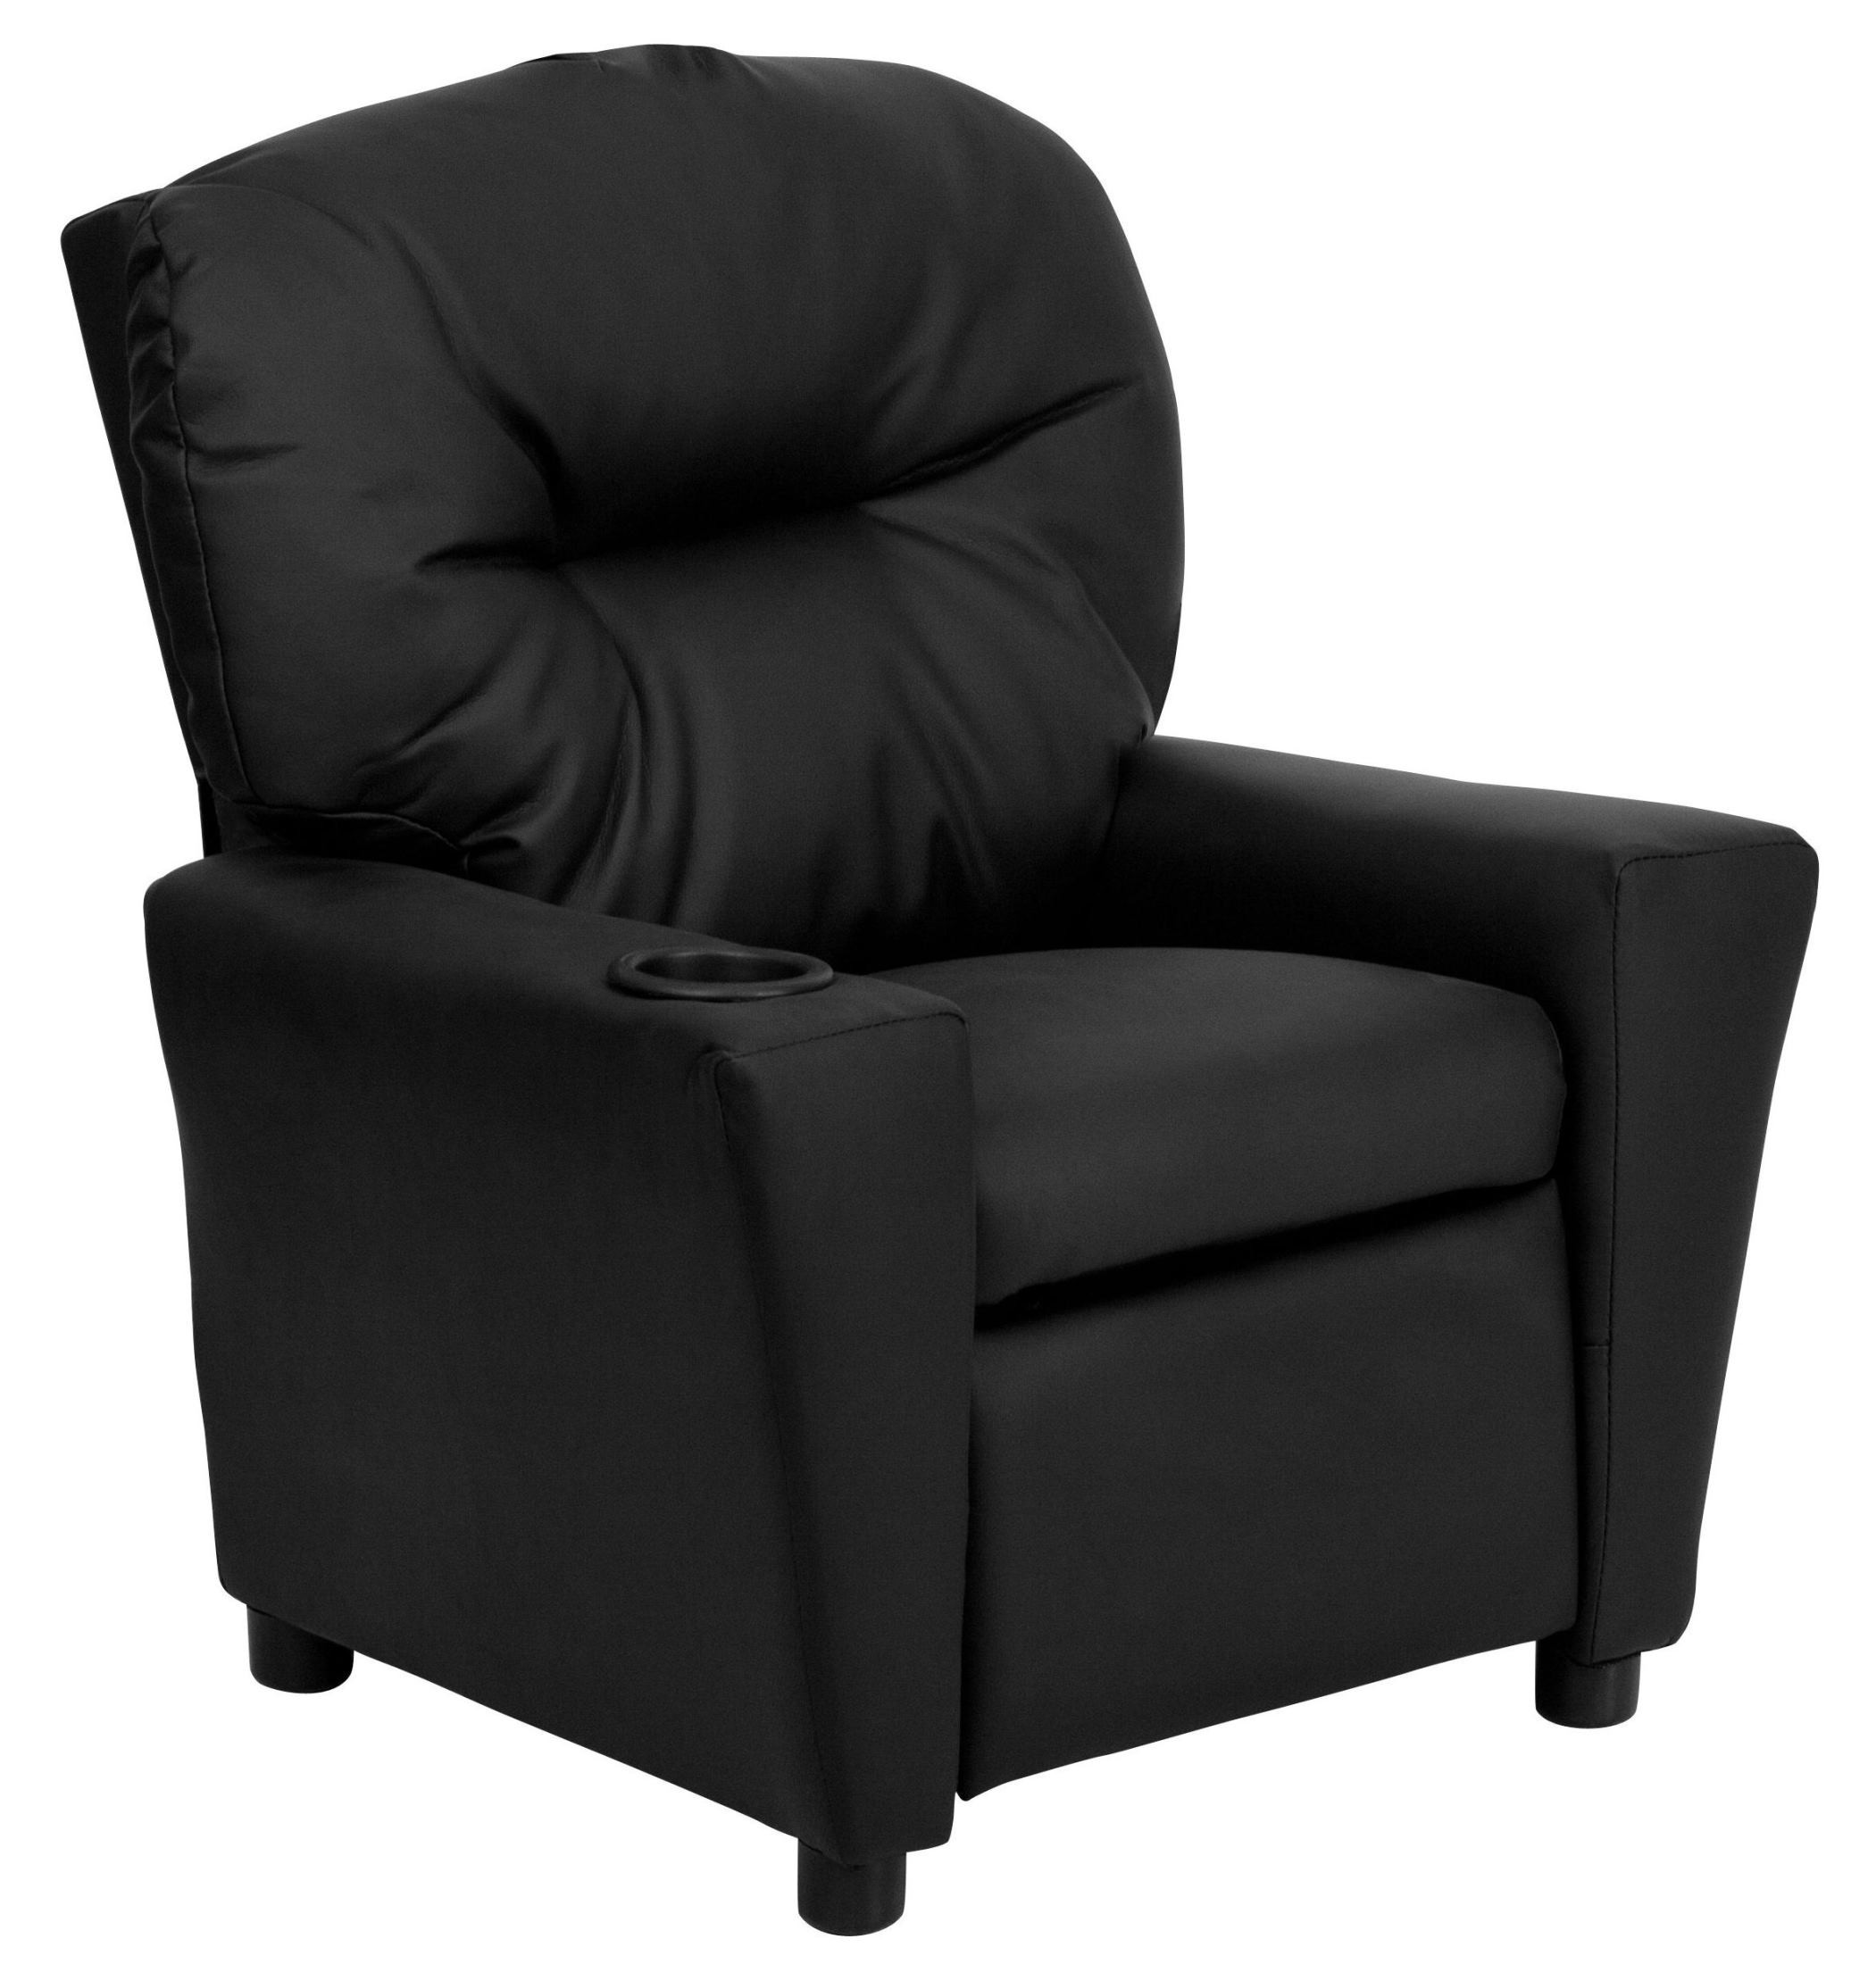 Black vinyl kids recliner with cup holder from renegade for Kids recliner chair